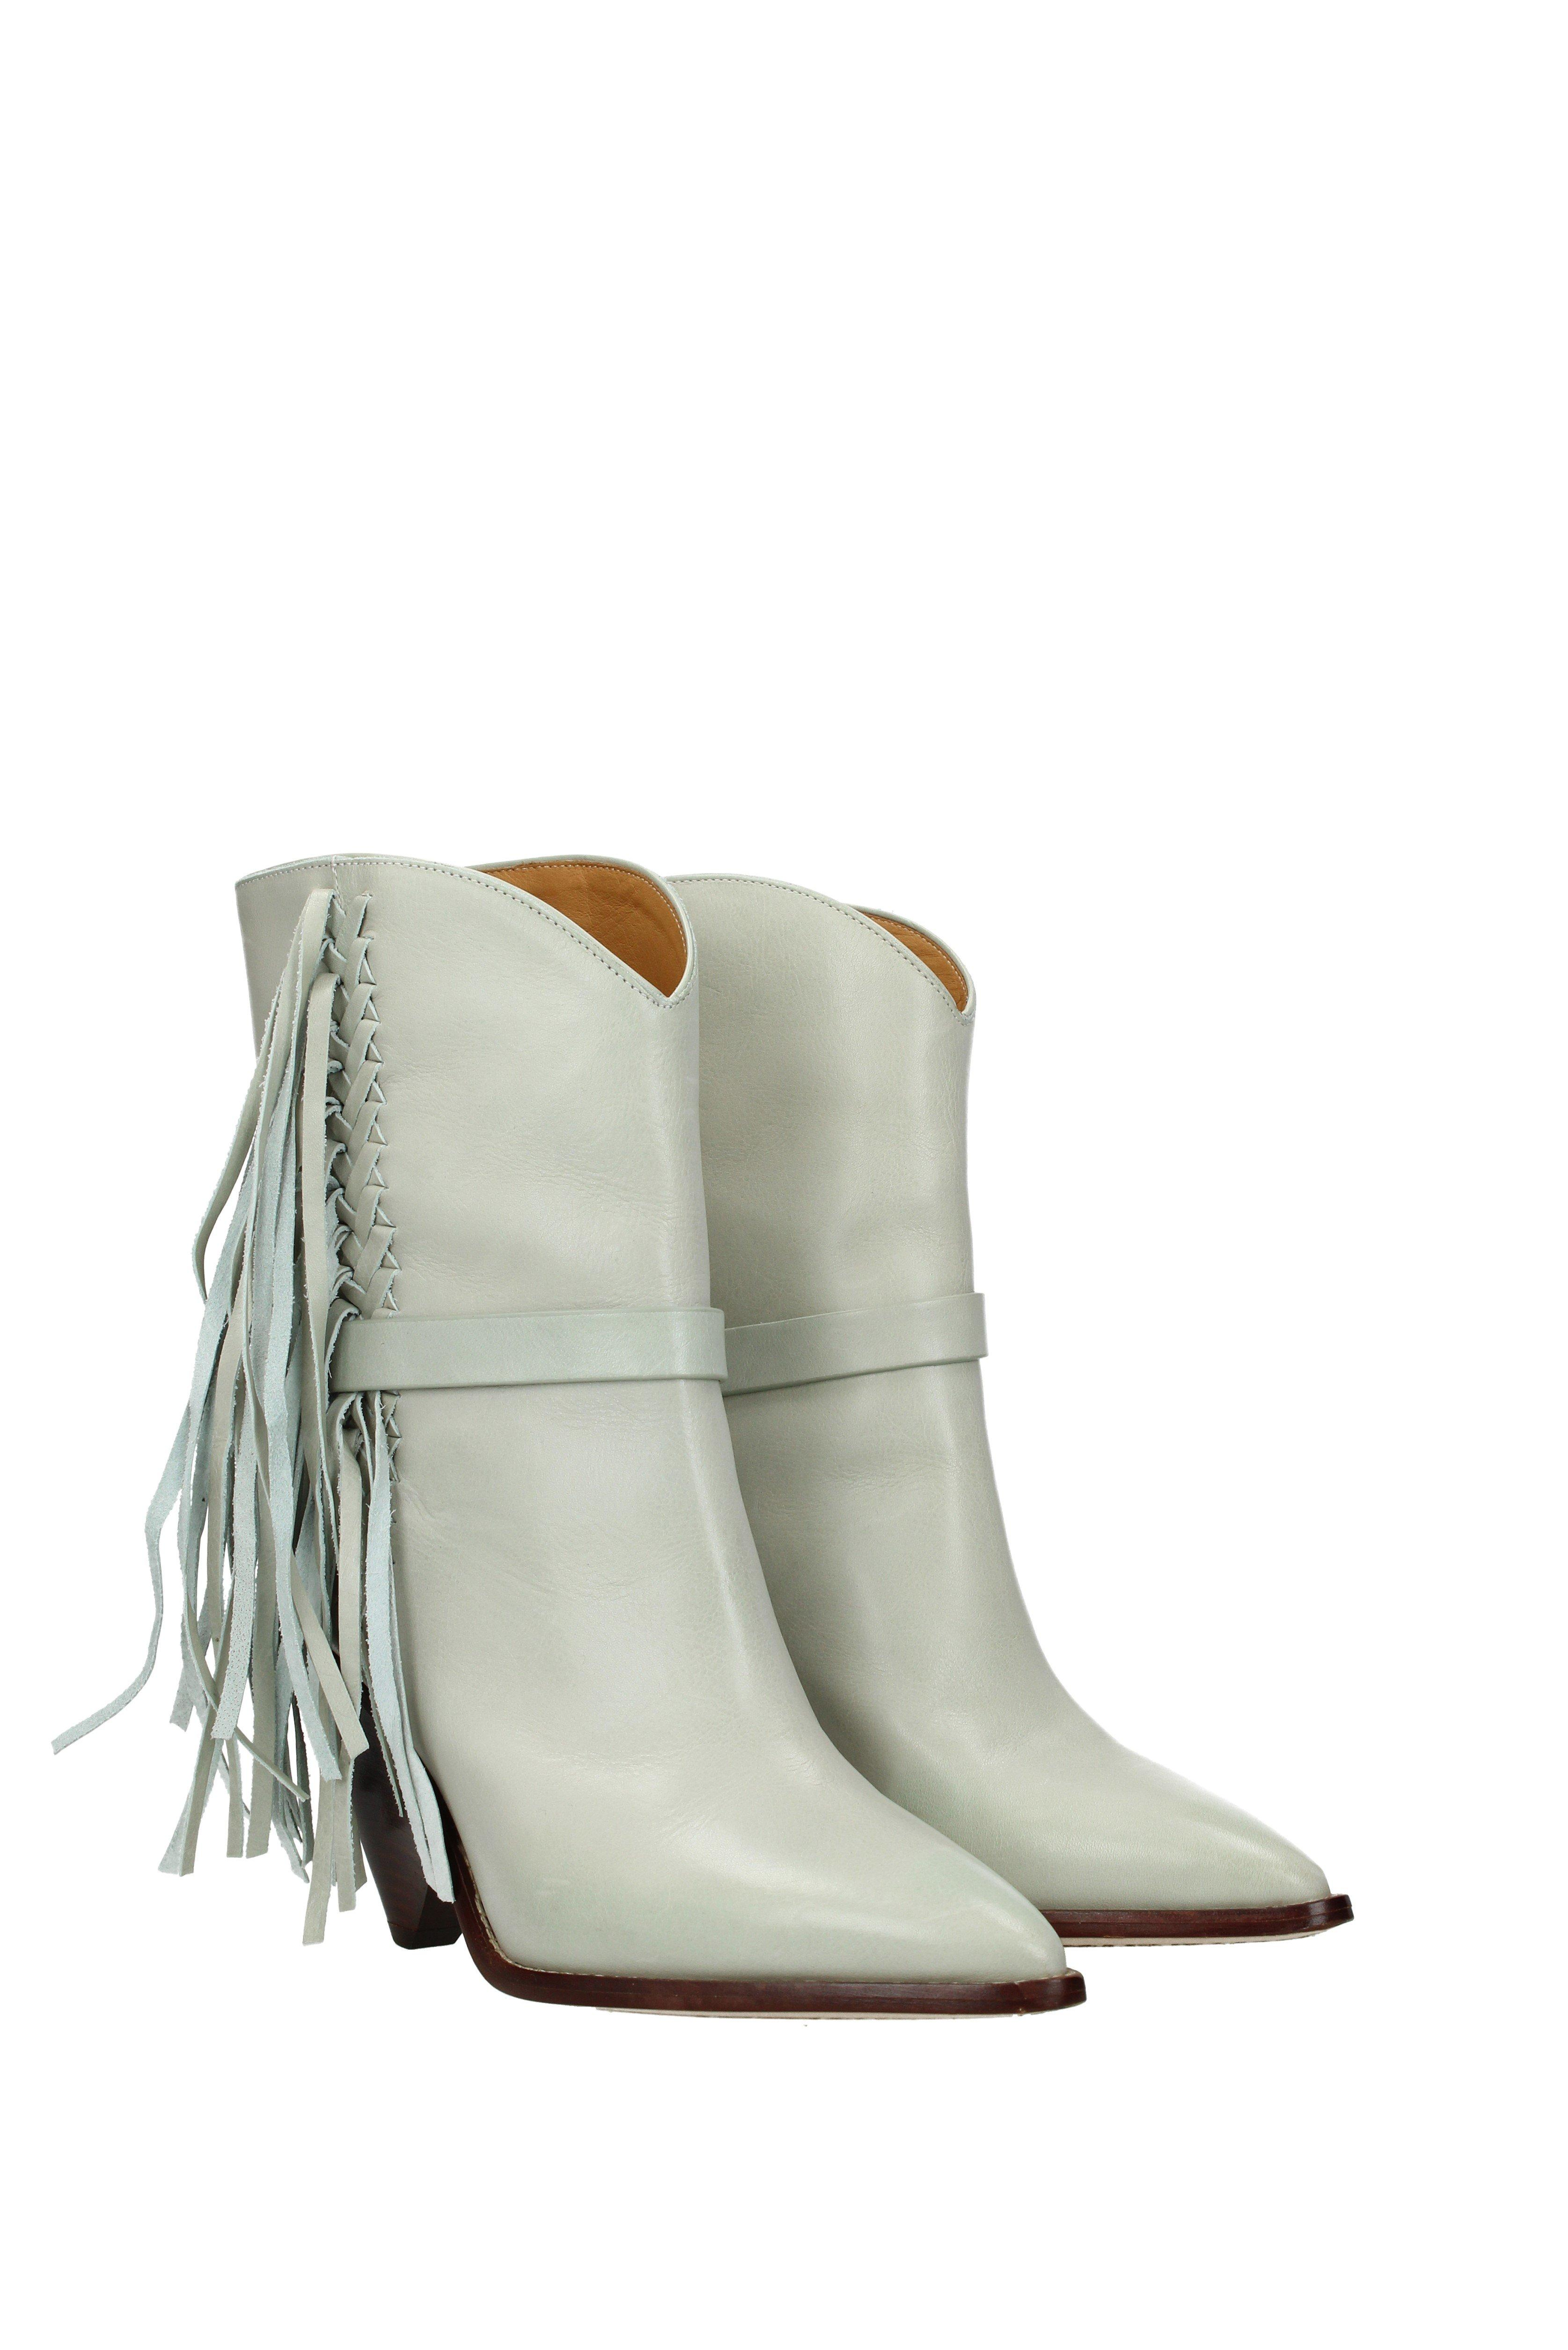 2a209f159a1 Isabel Marant Ankle Boots Loffen Women Gray - Lyst